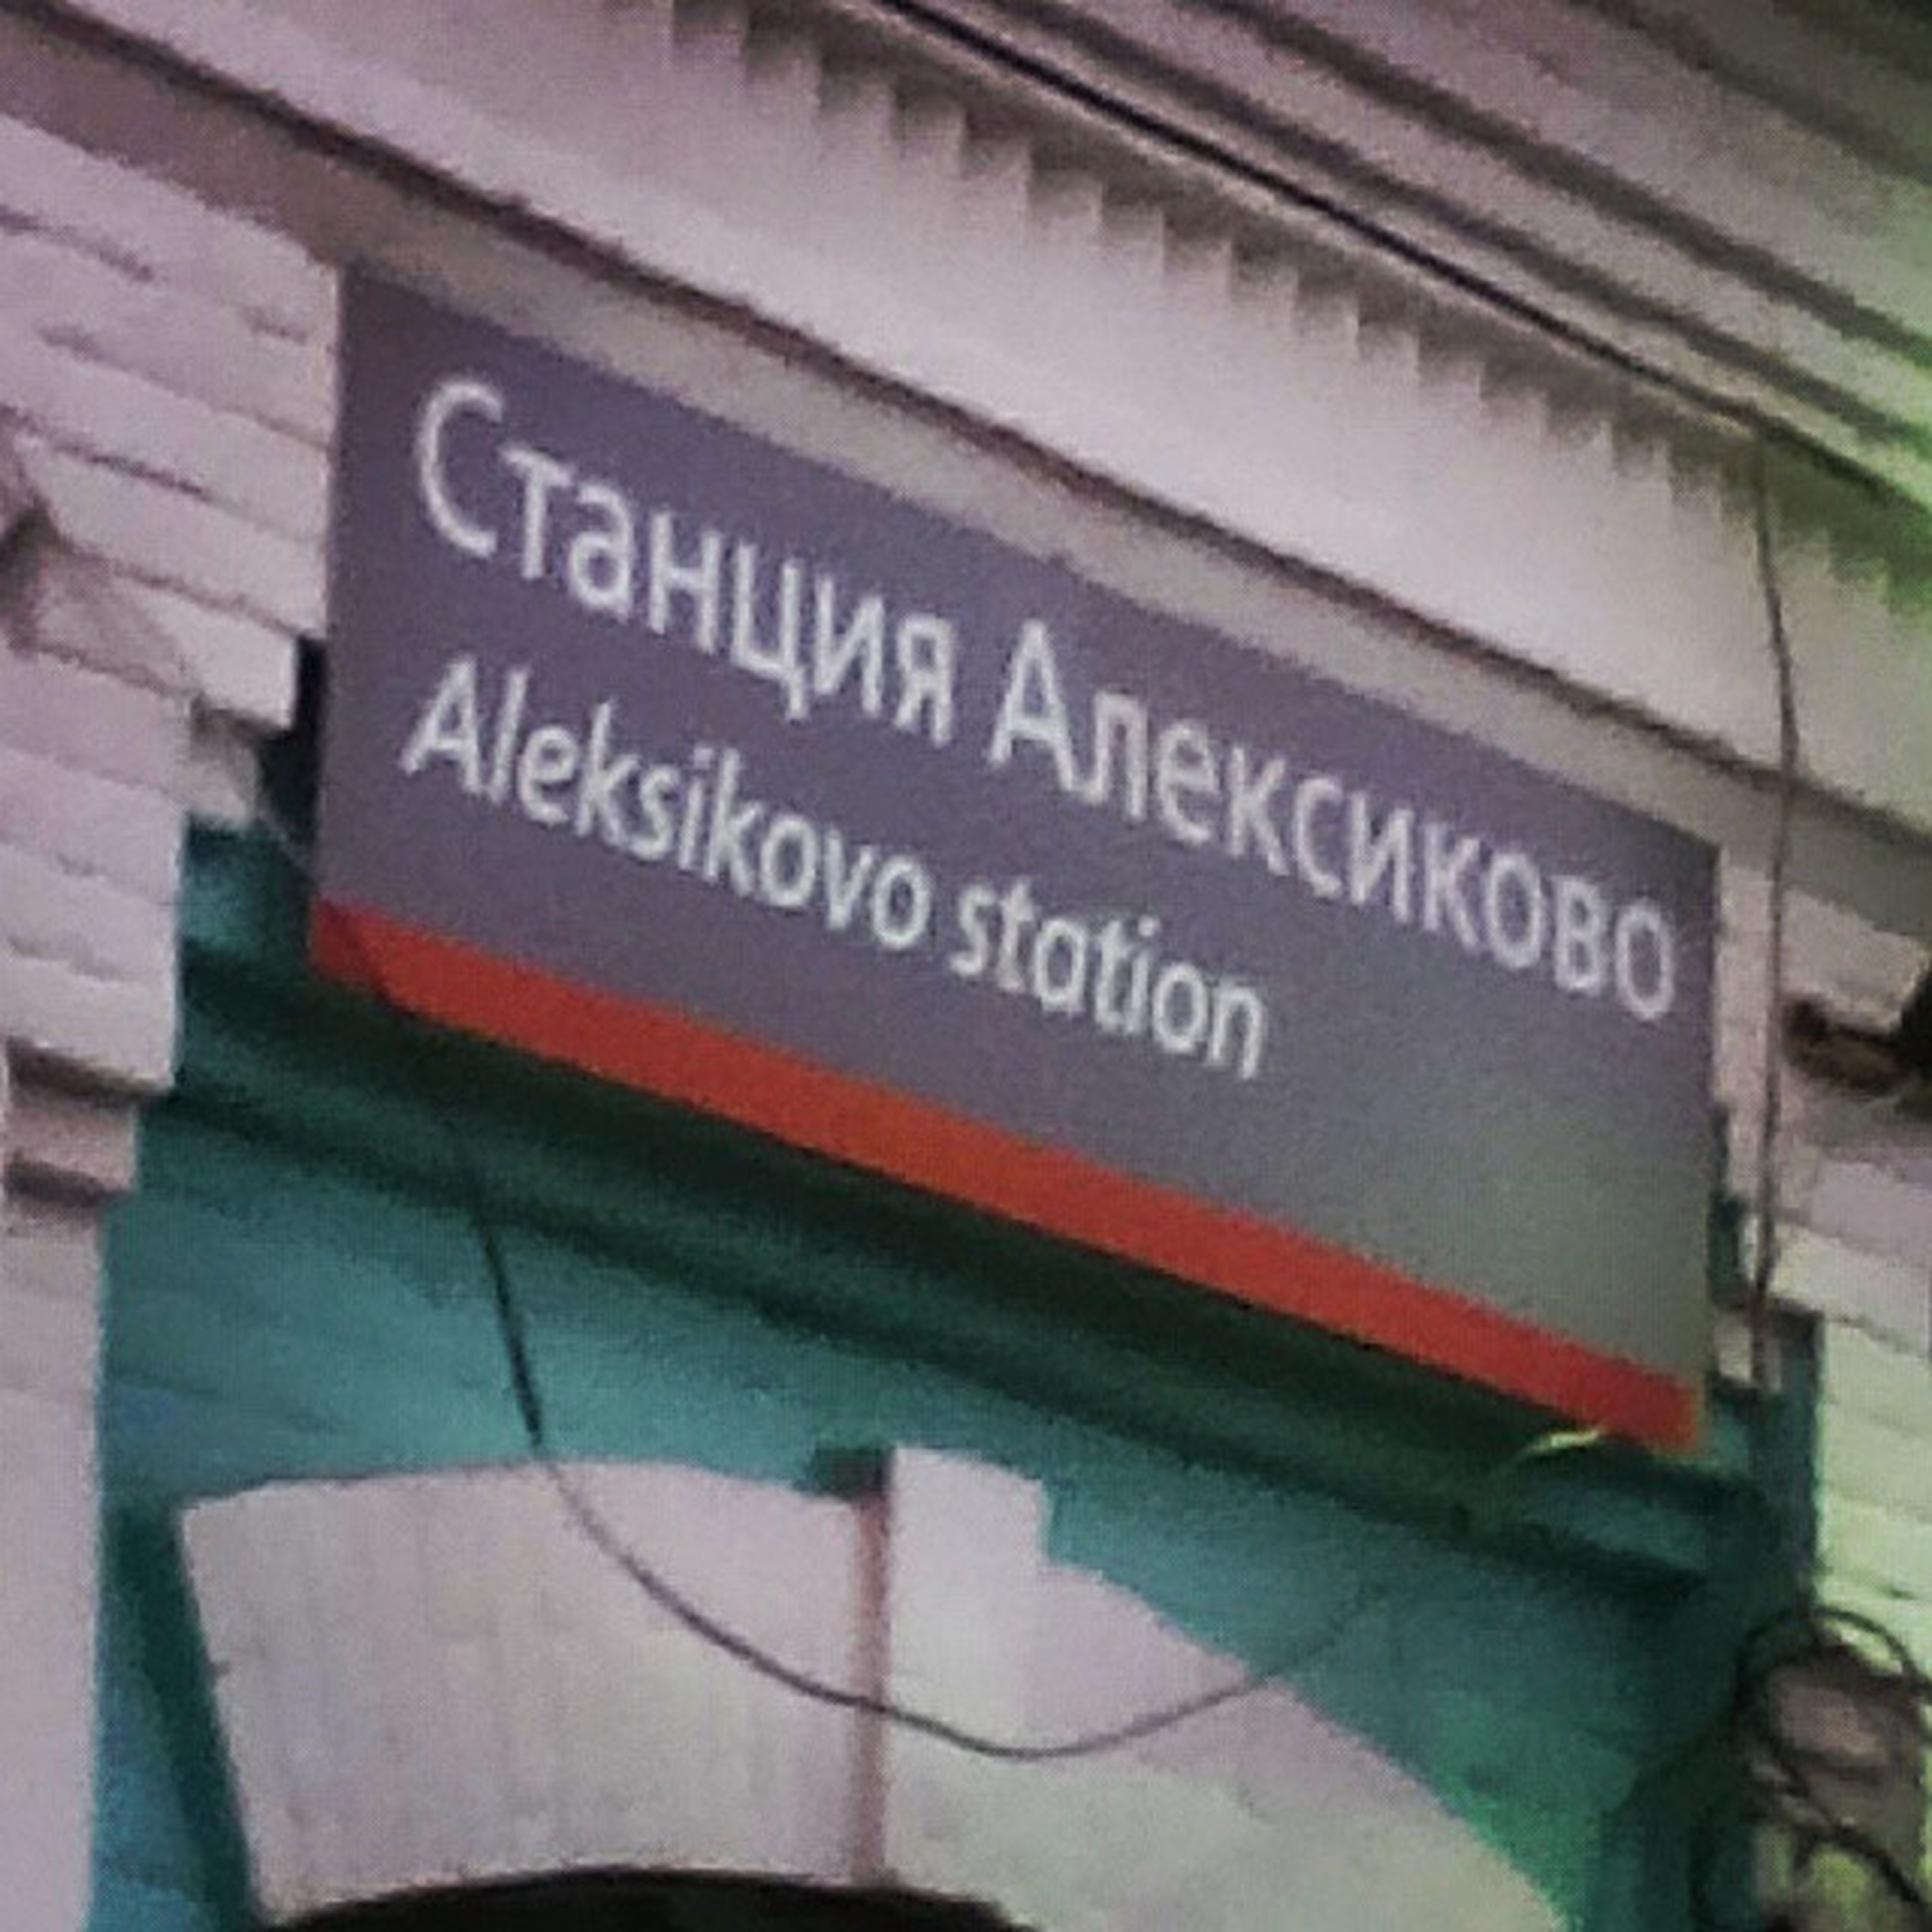 text, western script, communication, indoors, information sign, non-western script, transportation, information, sign, capital letter, guidance, wall - building feature, close-up, built structure, no people, day, architecture, mode of transport, arrow symbol, warning sign